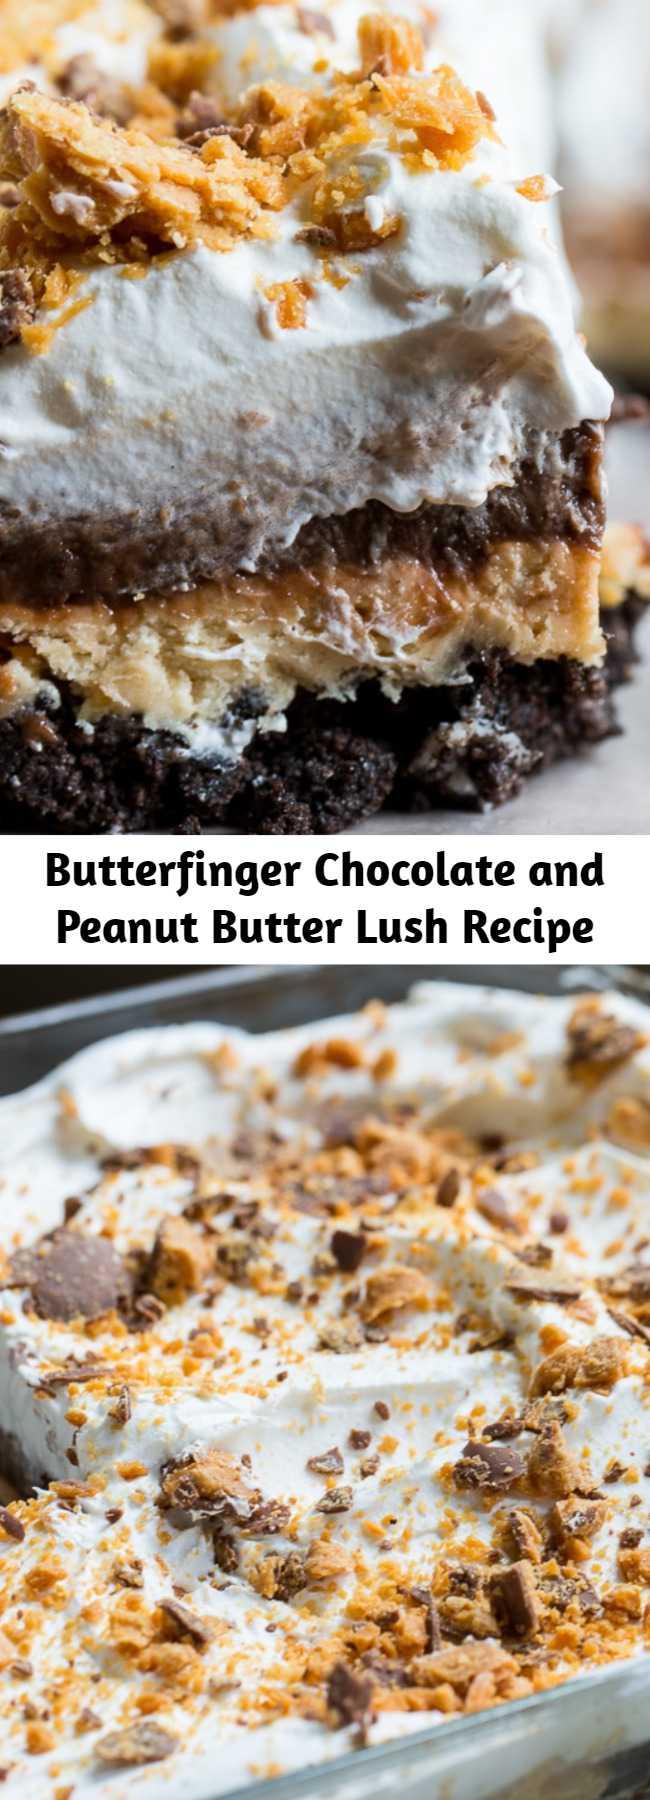 Butterfinger Chocolate and Peanut Butter Lush Recipe - So many delicious, creamy layers and the buttery crunch of Butterfinger candy. You won't find a more delicious dessert than this cool and creamy Butterfinger Chocolate and Peanut Butter Lush. Layer after layer of heaven!